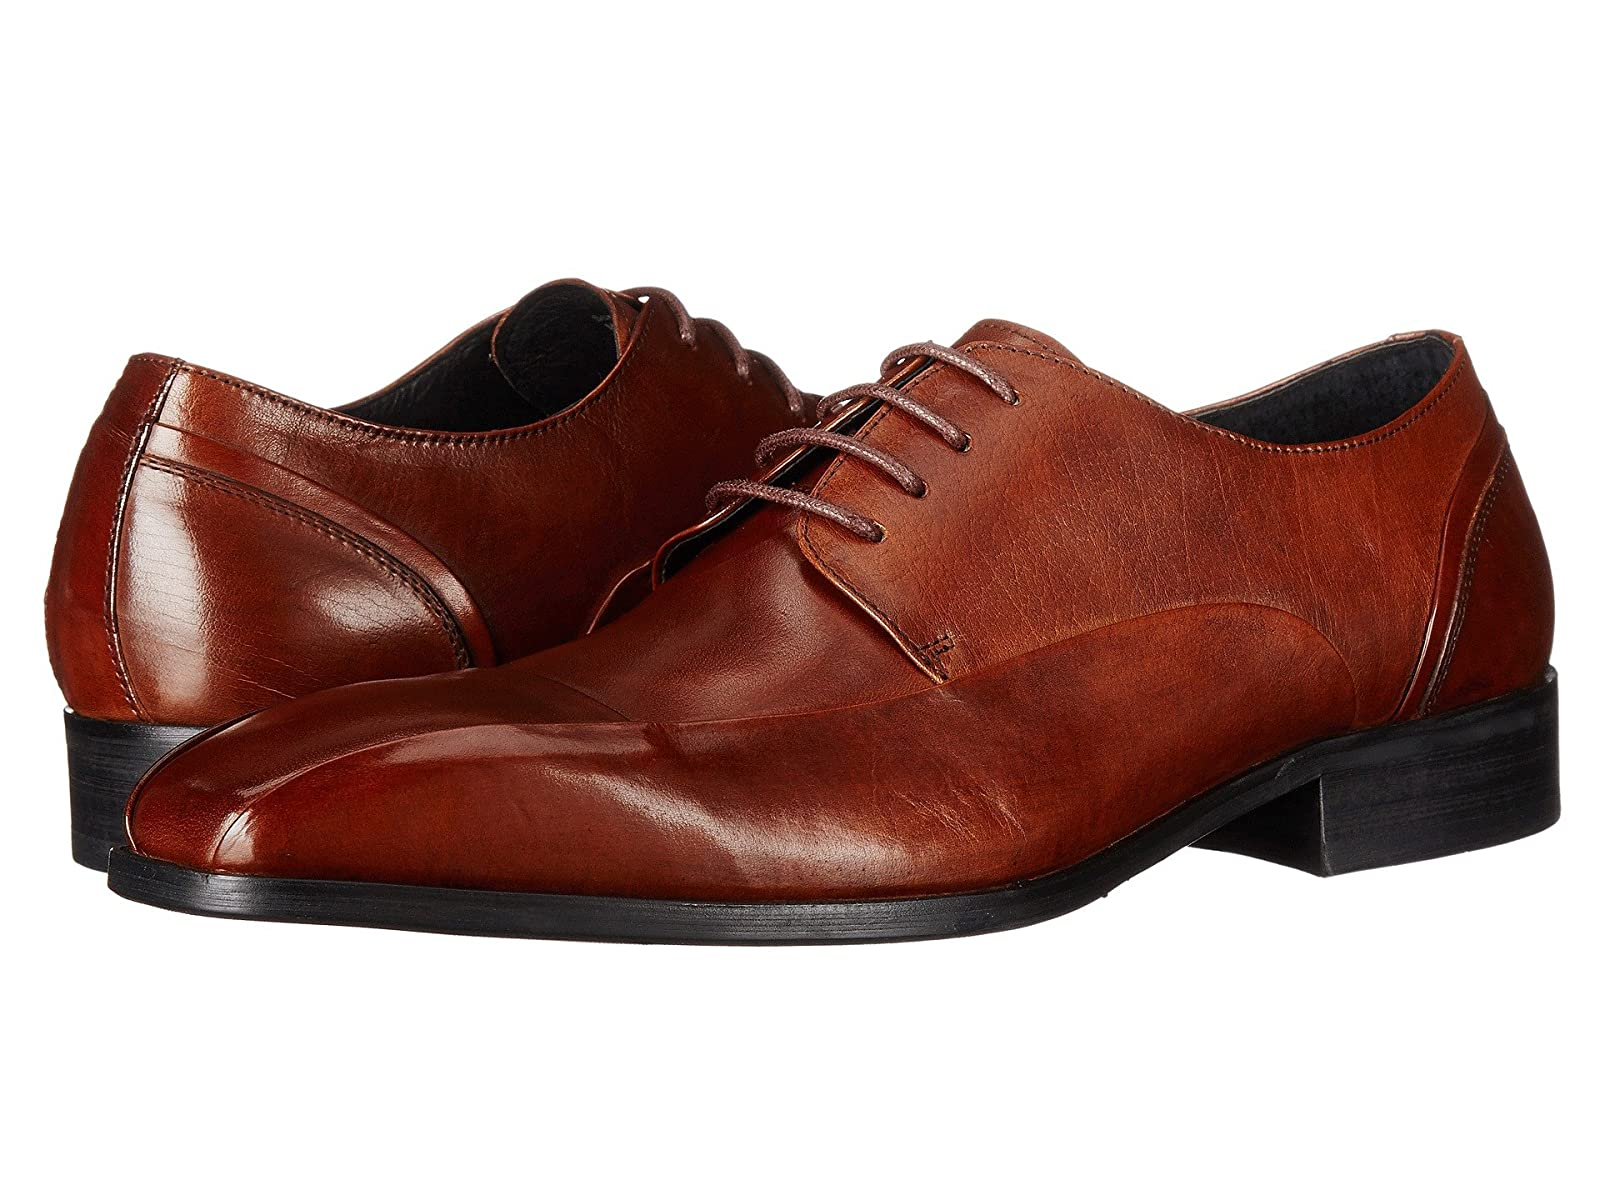 Kenneth Cole New York Sur-PlusCheap and distinctive eye-catching shoes